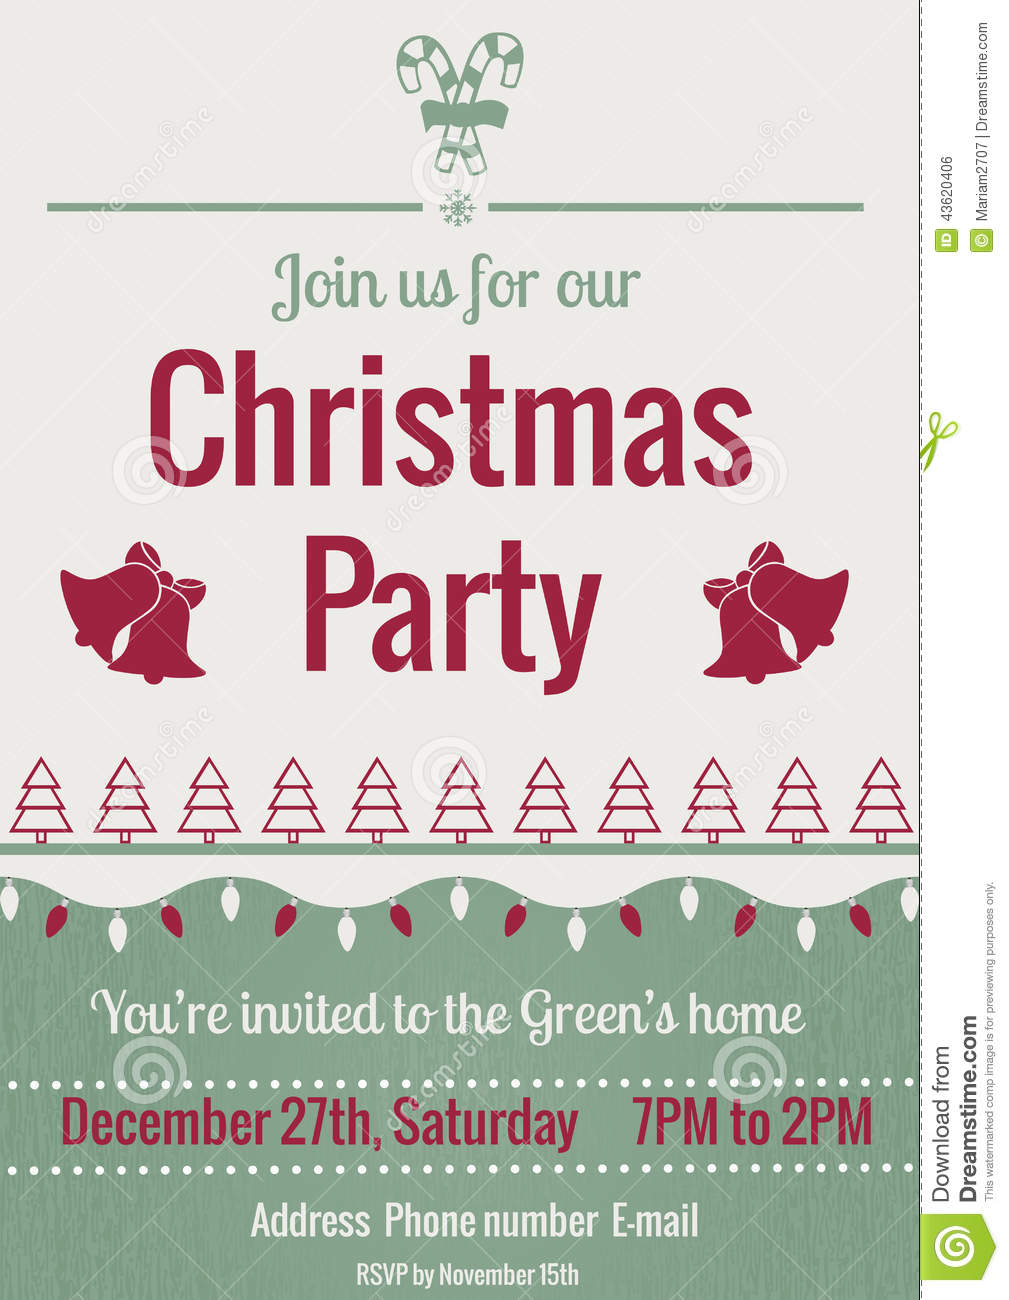 Vintage christmas party invitations - Bells Christmas Illustration Invitation Party